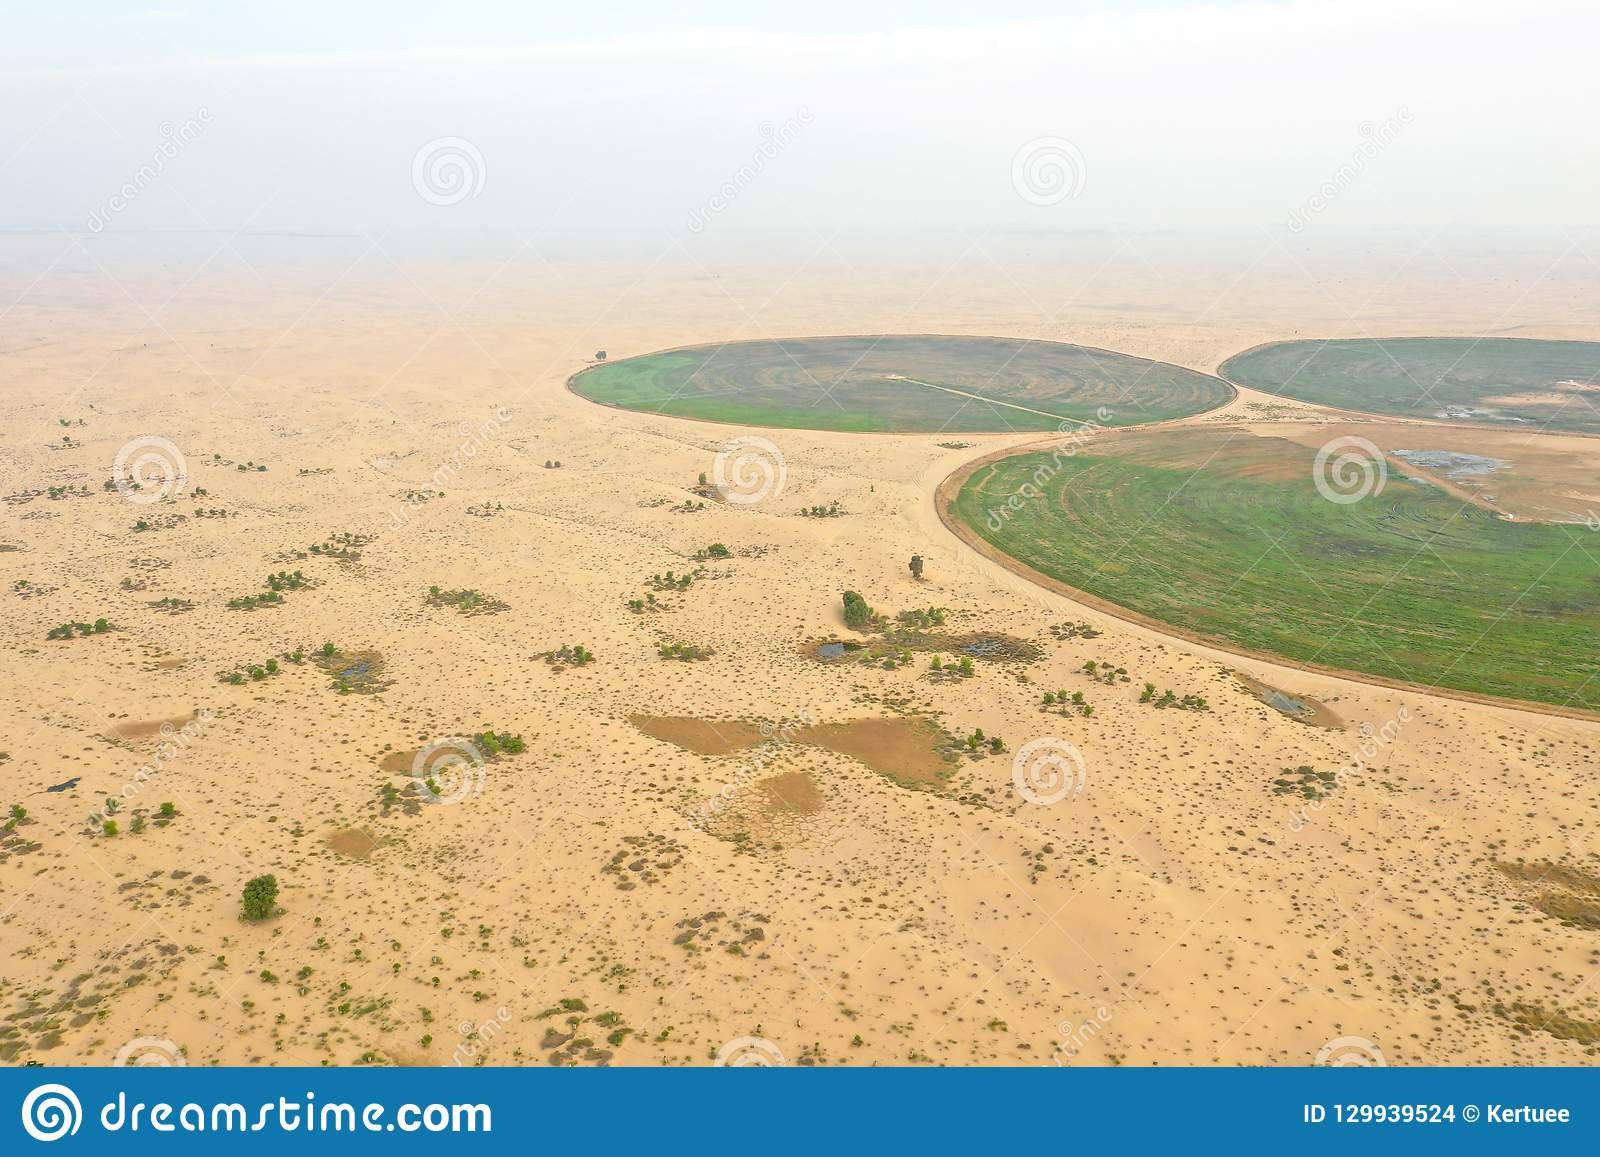 Circular Irrigation System In The Desert  Stock Photo